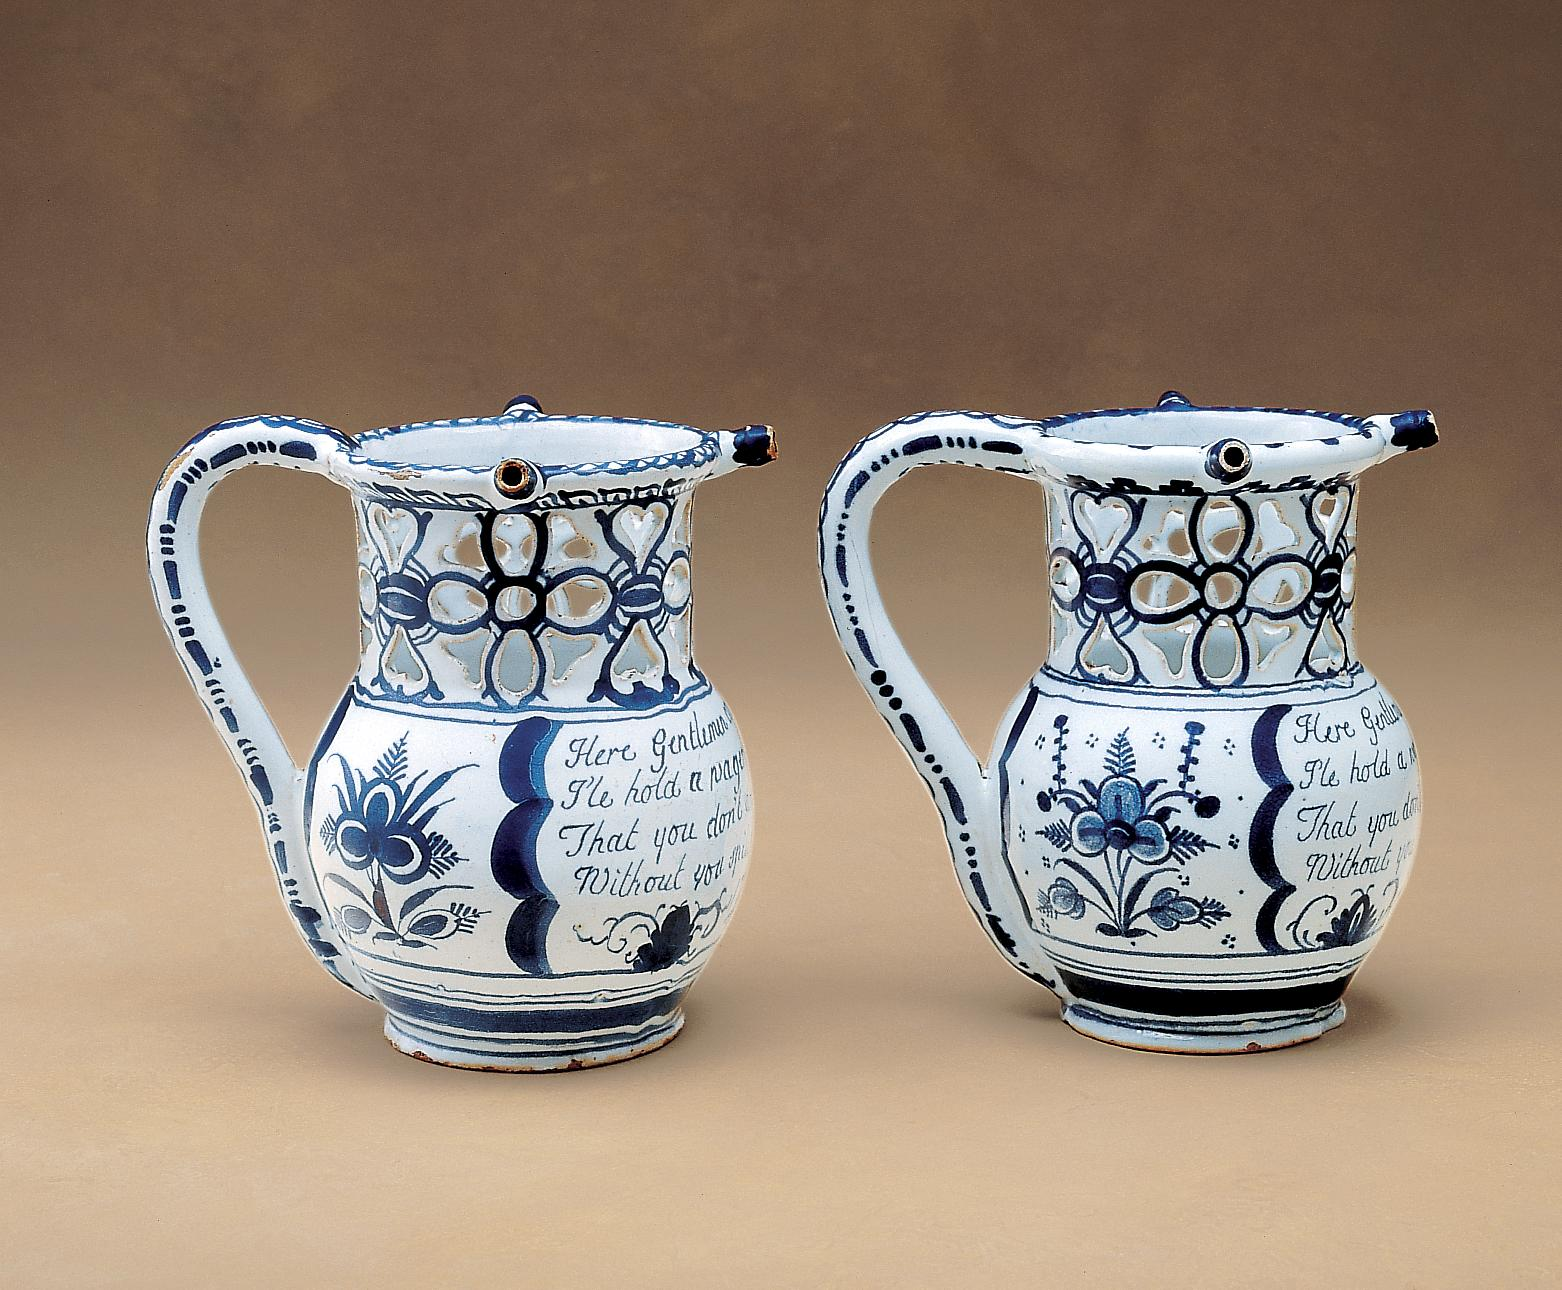 Puzzle jugs (1 of 2)